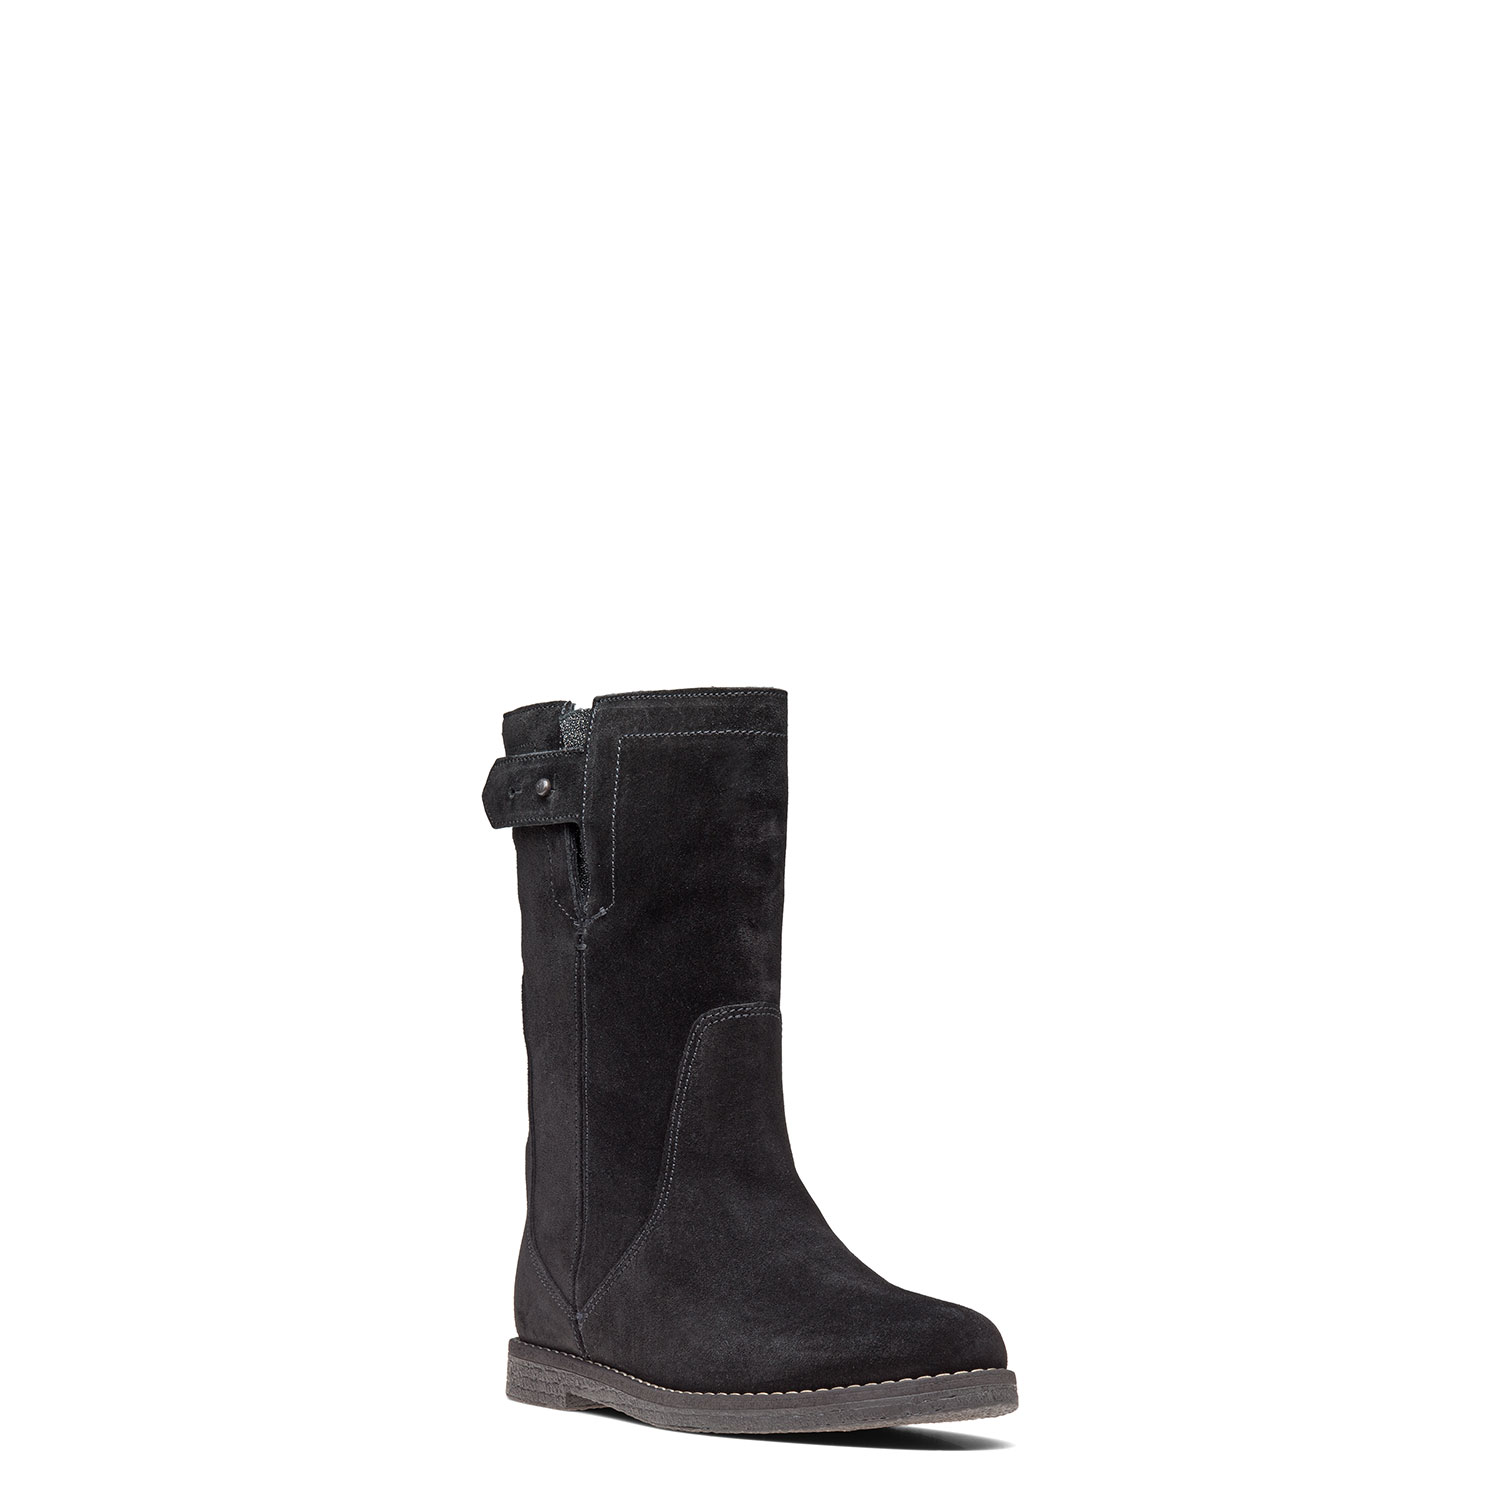 Women's cold weather mid-calf boots CARLO PAZOLINI SW-SNW2-1